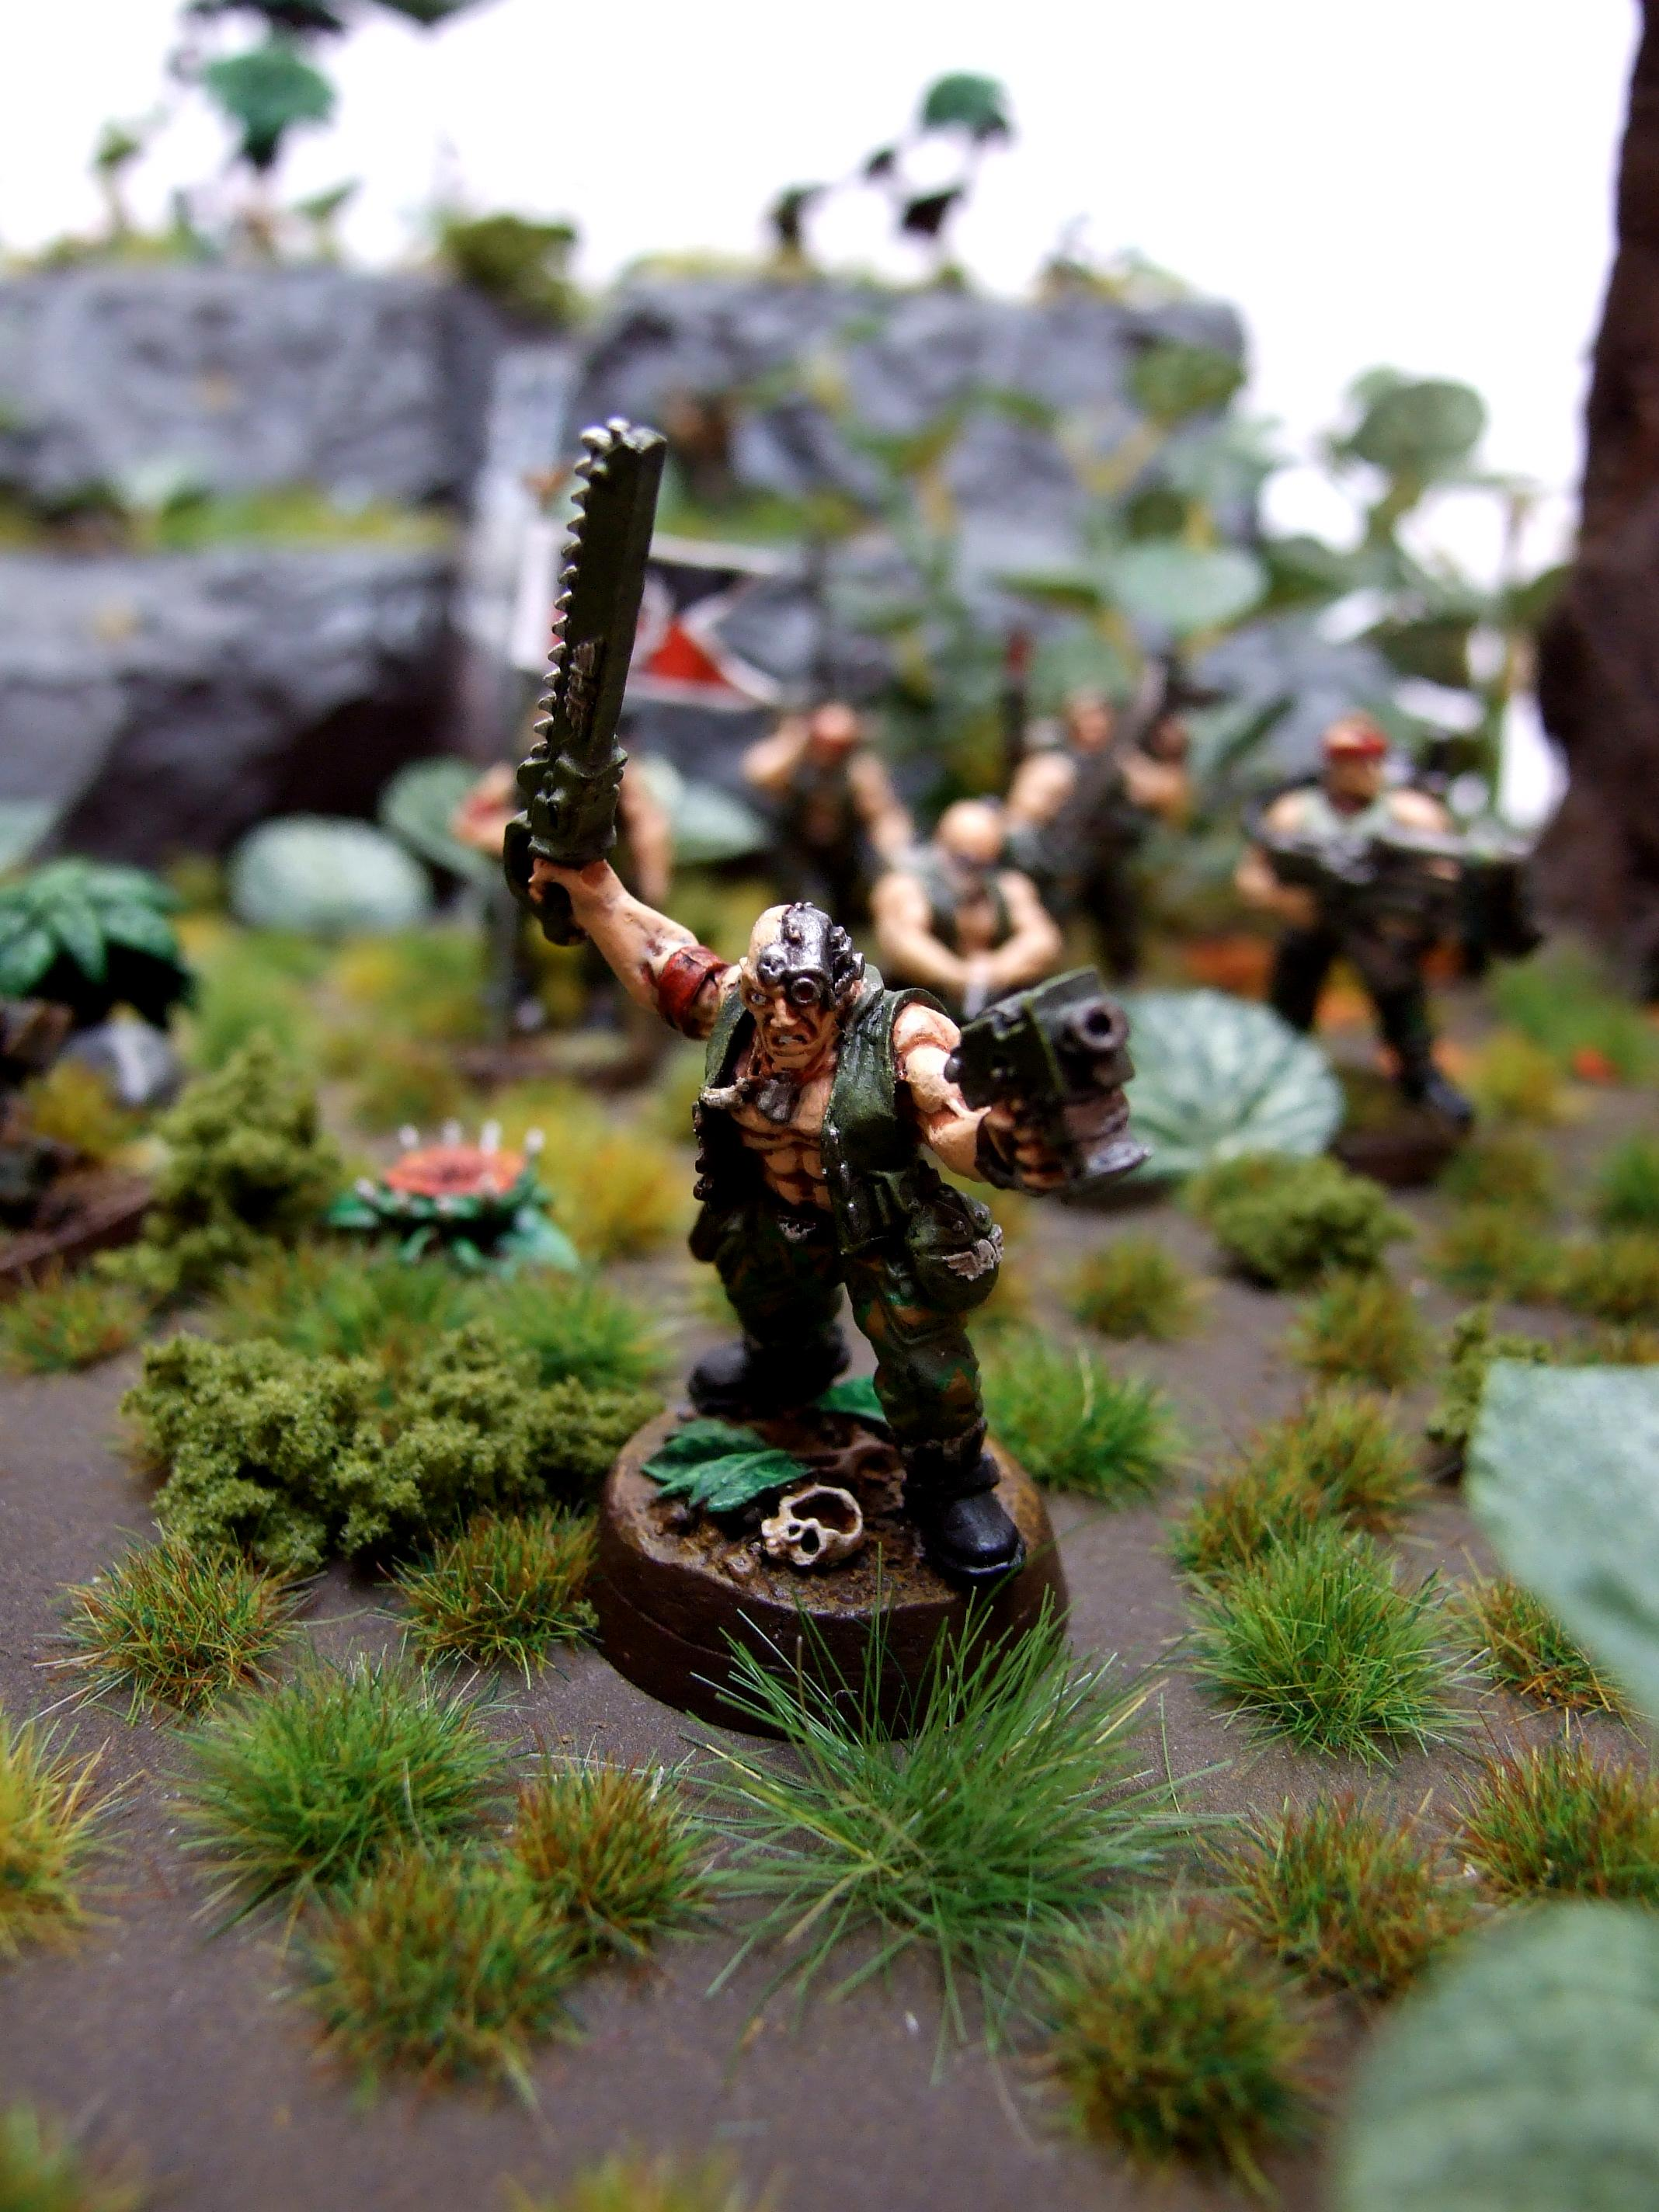 2013, Aop, Armies On Parade, Catachan, Imperial Guard, Jungle, Jungle Fighter, Jungle Scenery, Warhammer 40,000, Winner